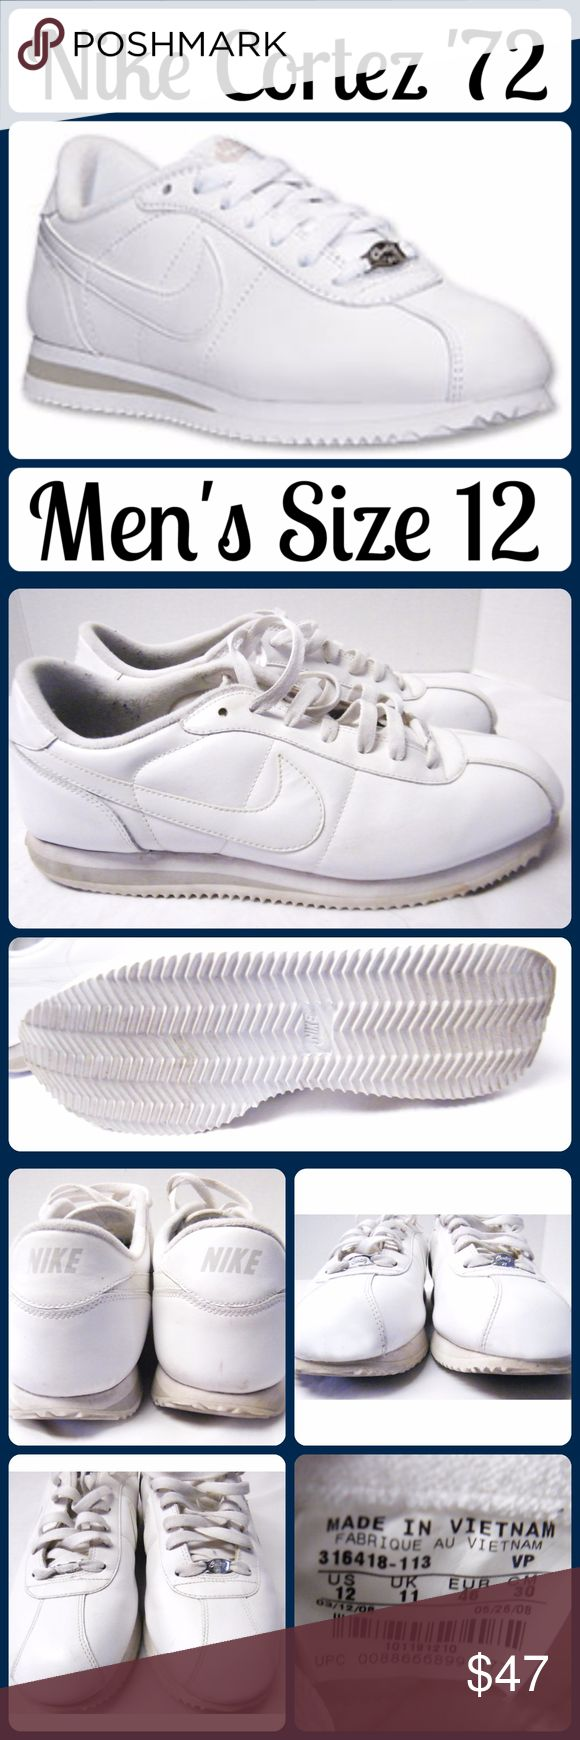 Men's Sz 12 Nike Cortez '72 Tennis Shoes Excellent New Like Condition! Sz 12 Men, worn 1 time - less than 15k steps (according to a fitbit) .... From a smoke-free, dog friendly home, No trades and no off-site transactions! Nike Shoes Athletic Shoes